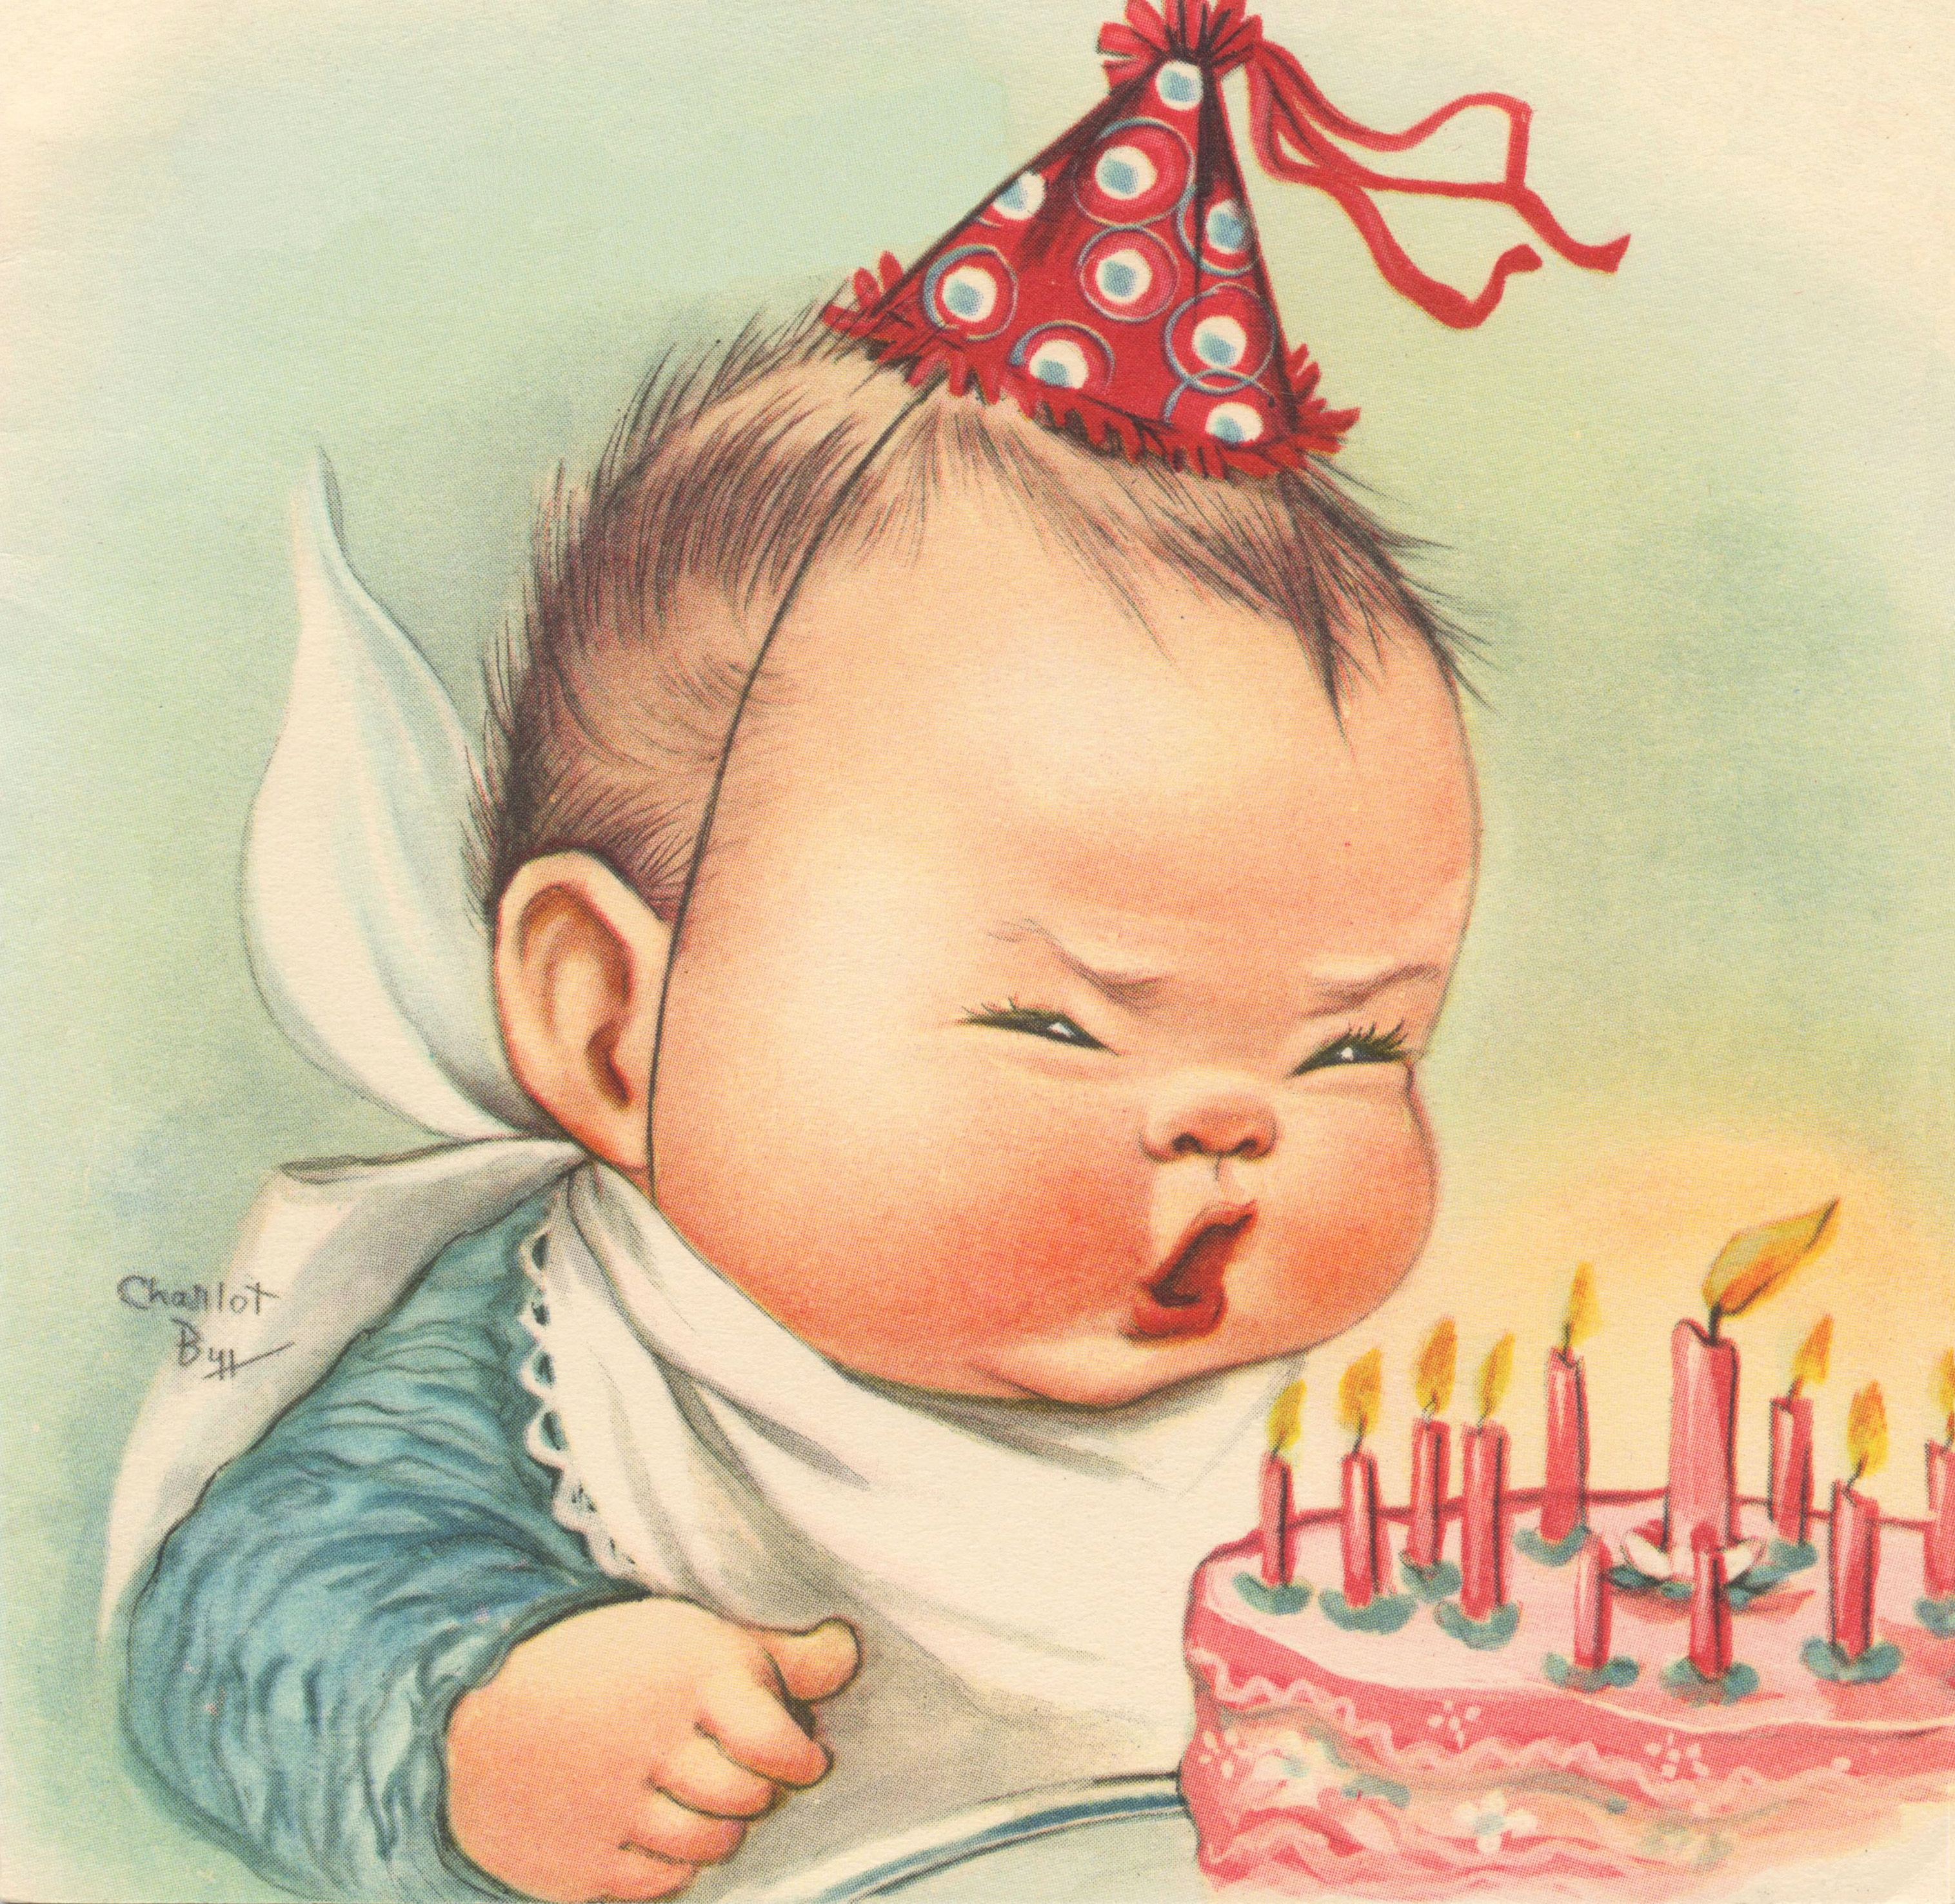 can i blow your birthday candle card ; can-i-blow-your-birthday-candle-card-luxury-vintage-greeting-card-05-big-blow-out-birthday-card-of-can-i-blow-your-birthday-candle-card